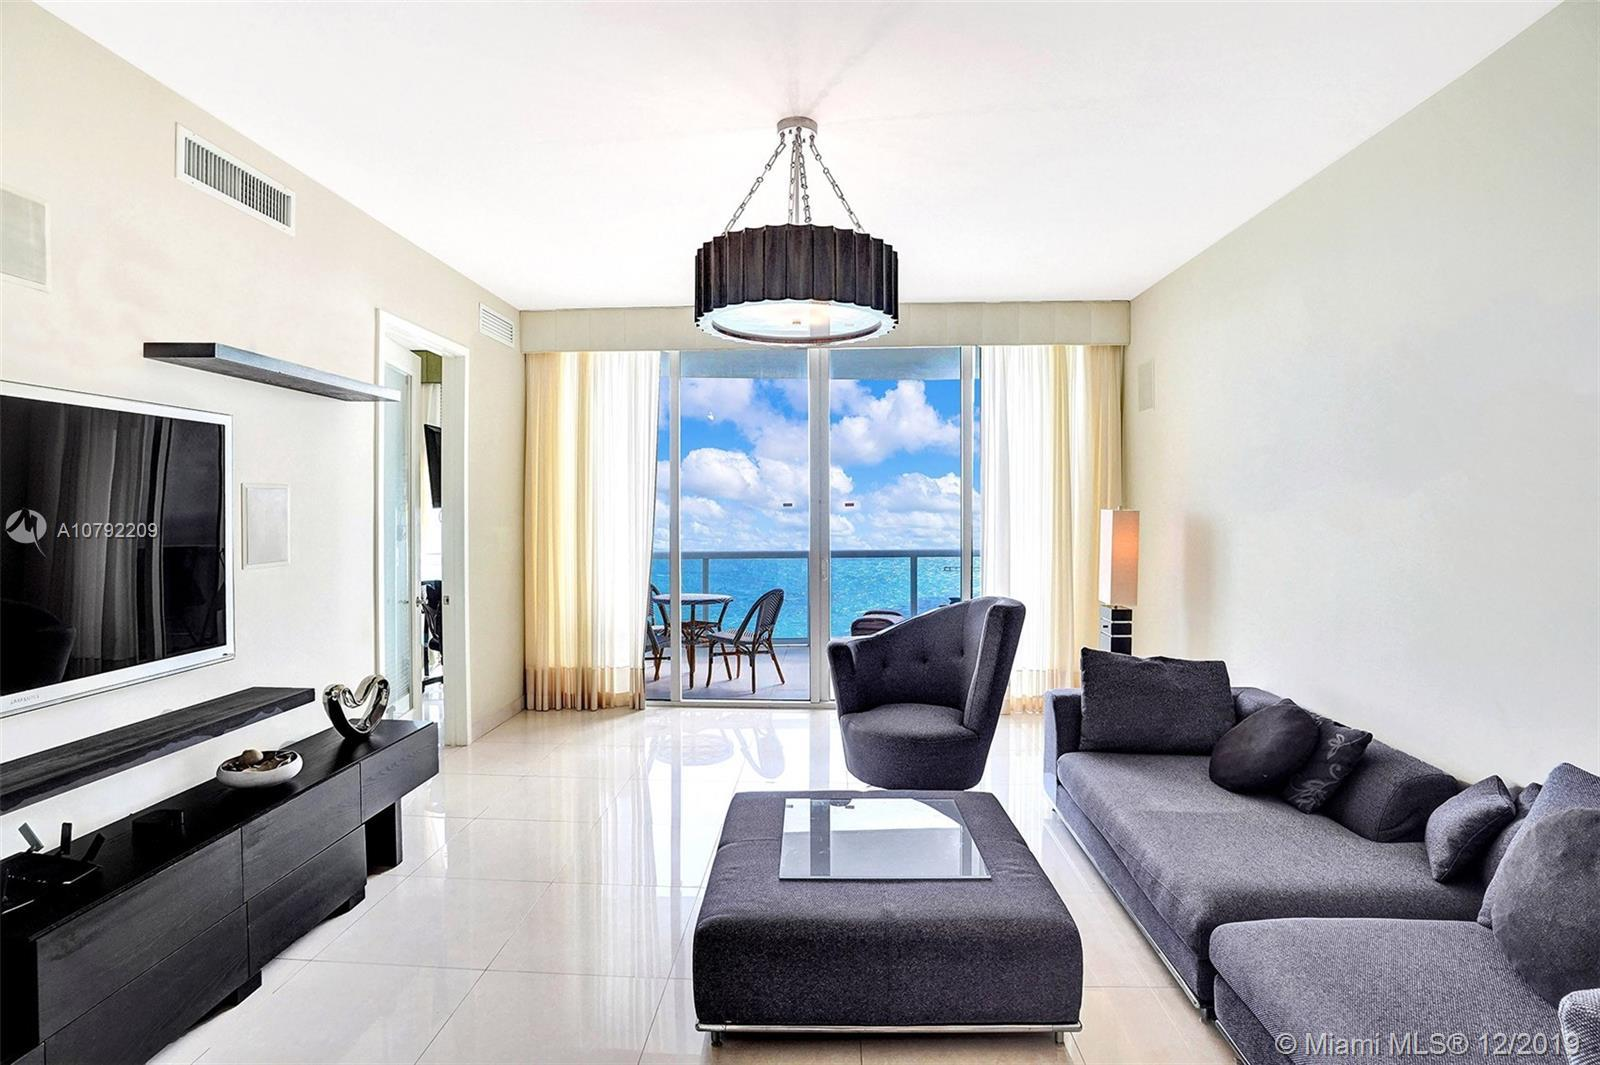 Beautiful spacious flow through unit 3 bdrs, 3,5 baths with amazing ocean and city views with the la